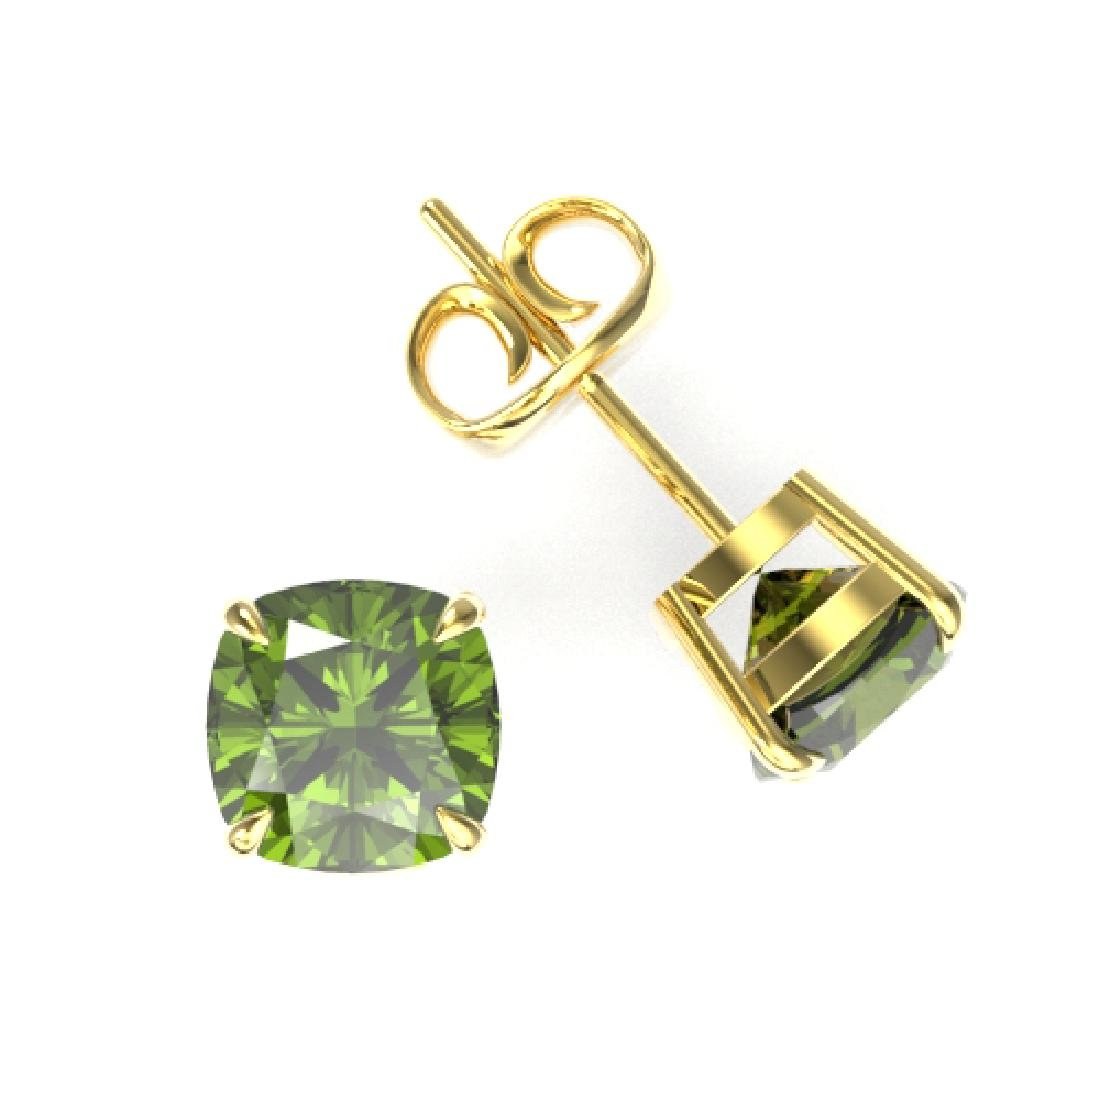 4 CTW Cushion Cut Green Tourmaline Designer Stud - 2